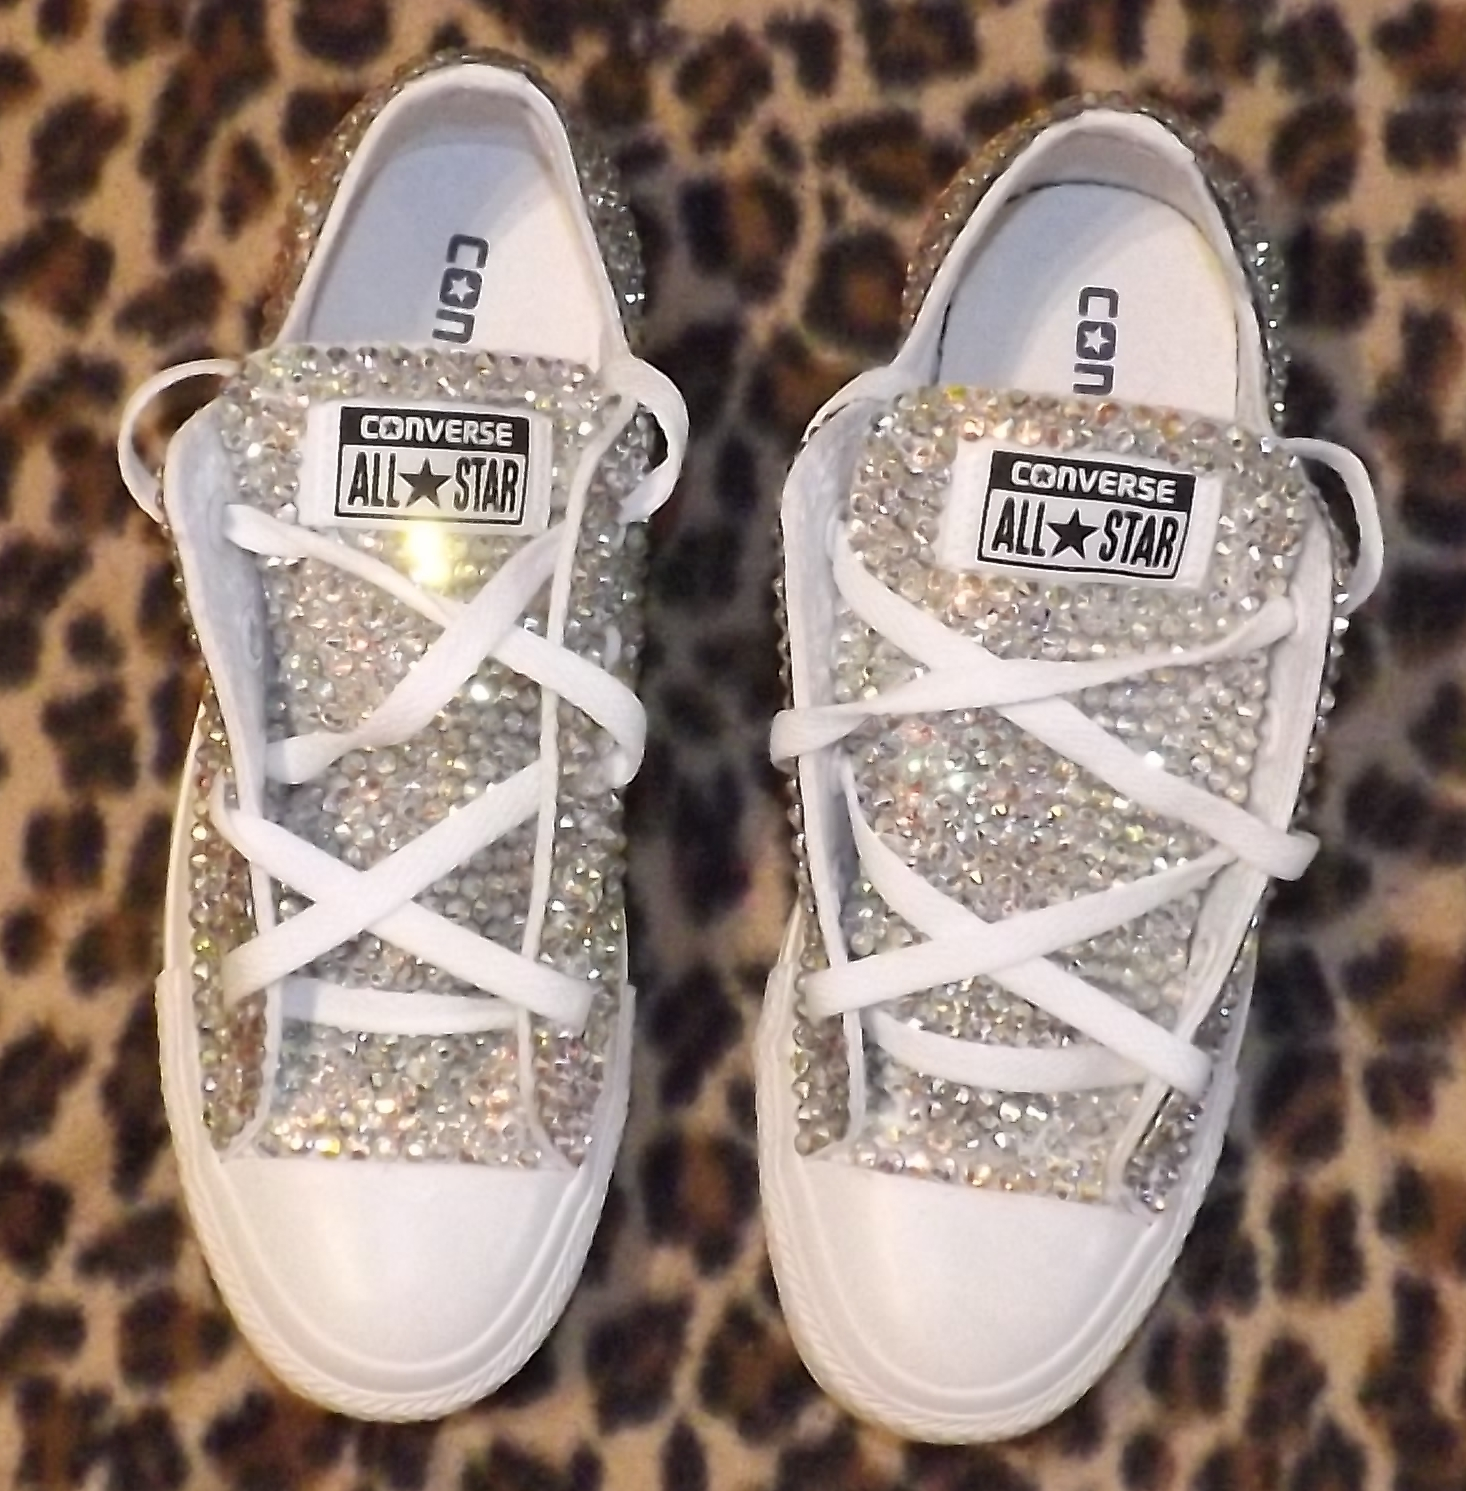 1f70e76c1b76 Swarovski Elements AB Converse in White · Million Dollar Kicks ...